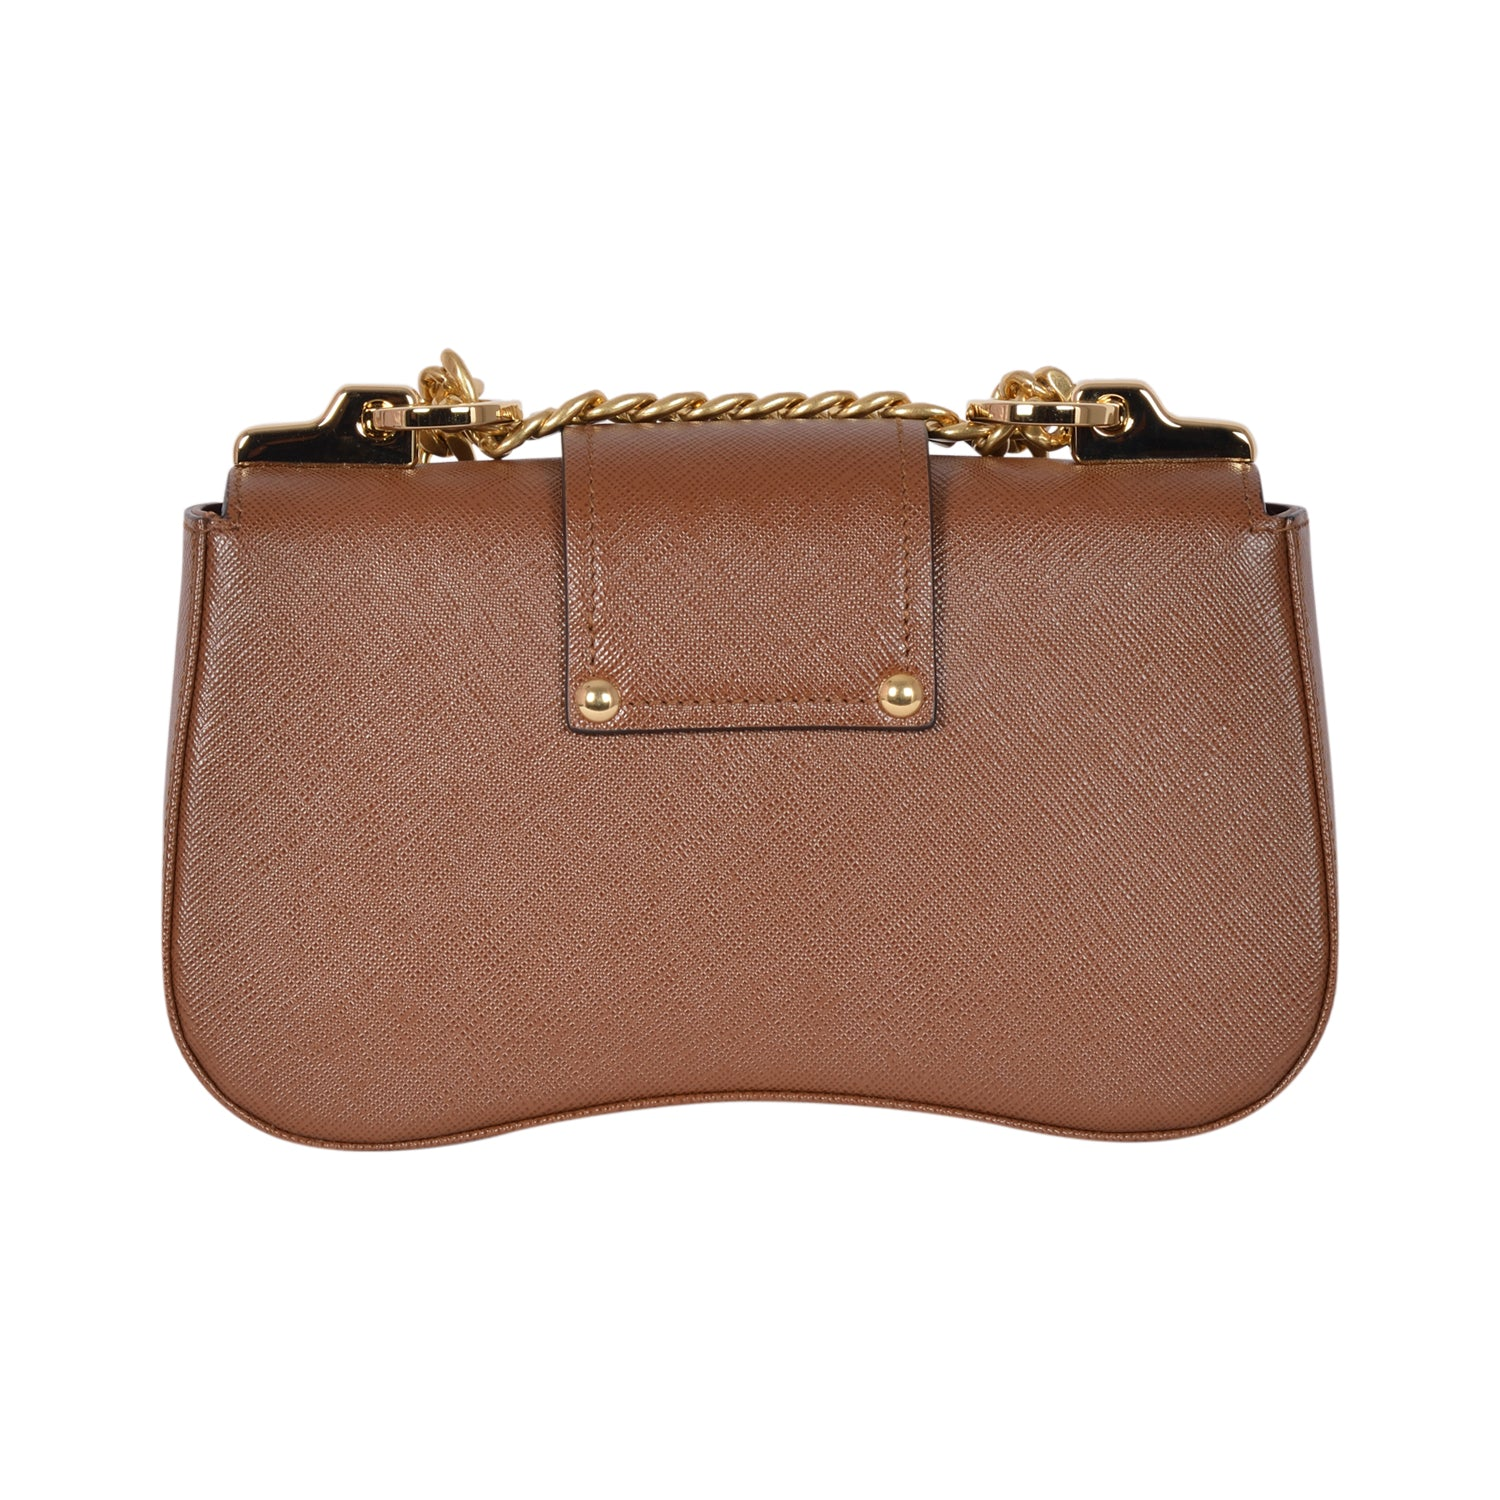 Prada shoulder bag in high quality leather | Shop Luxury Handbag Online